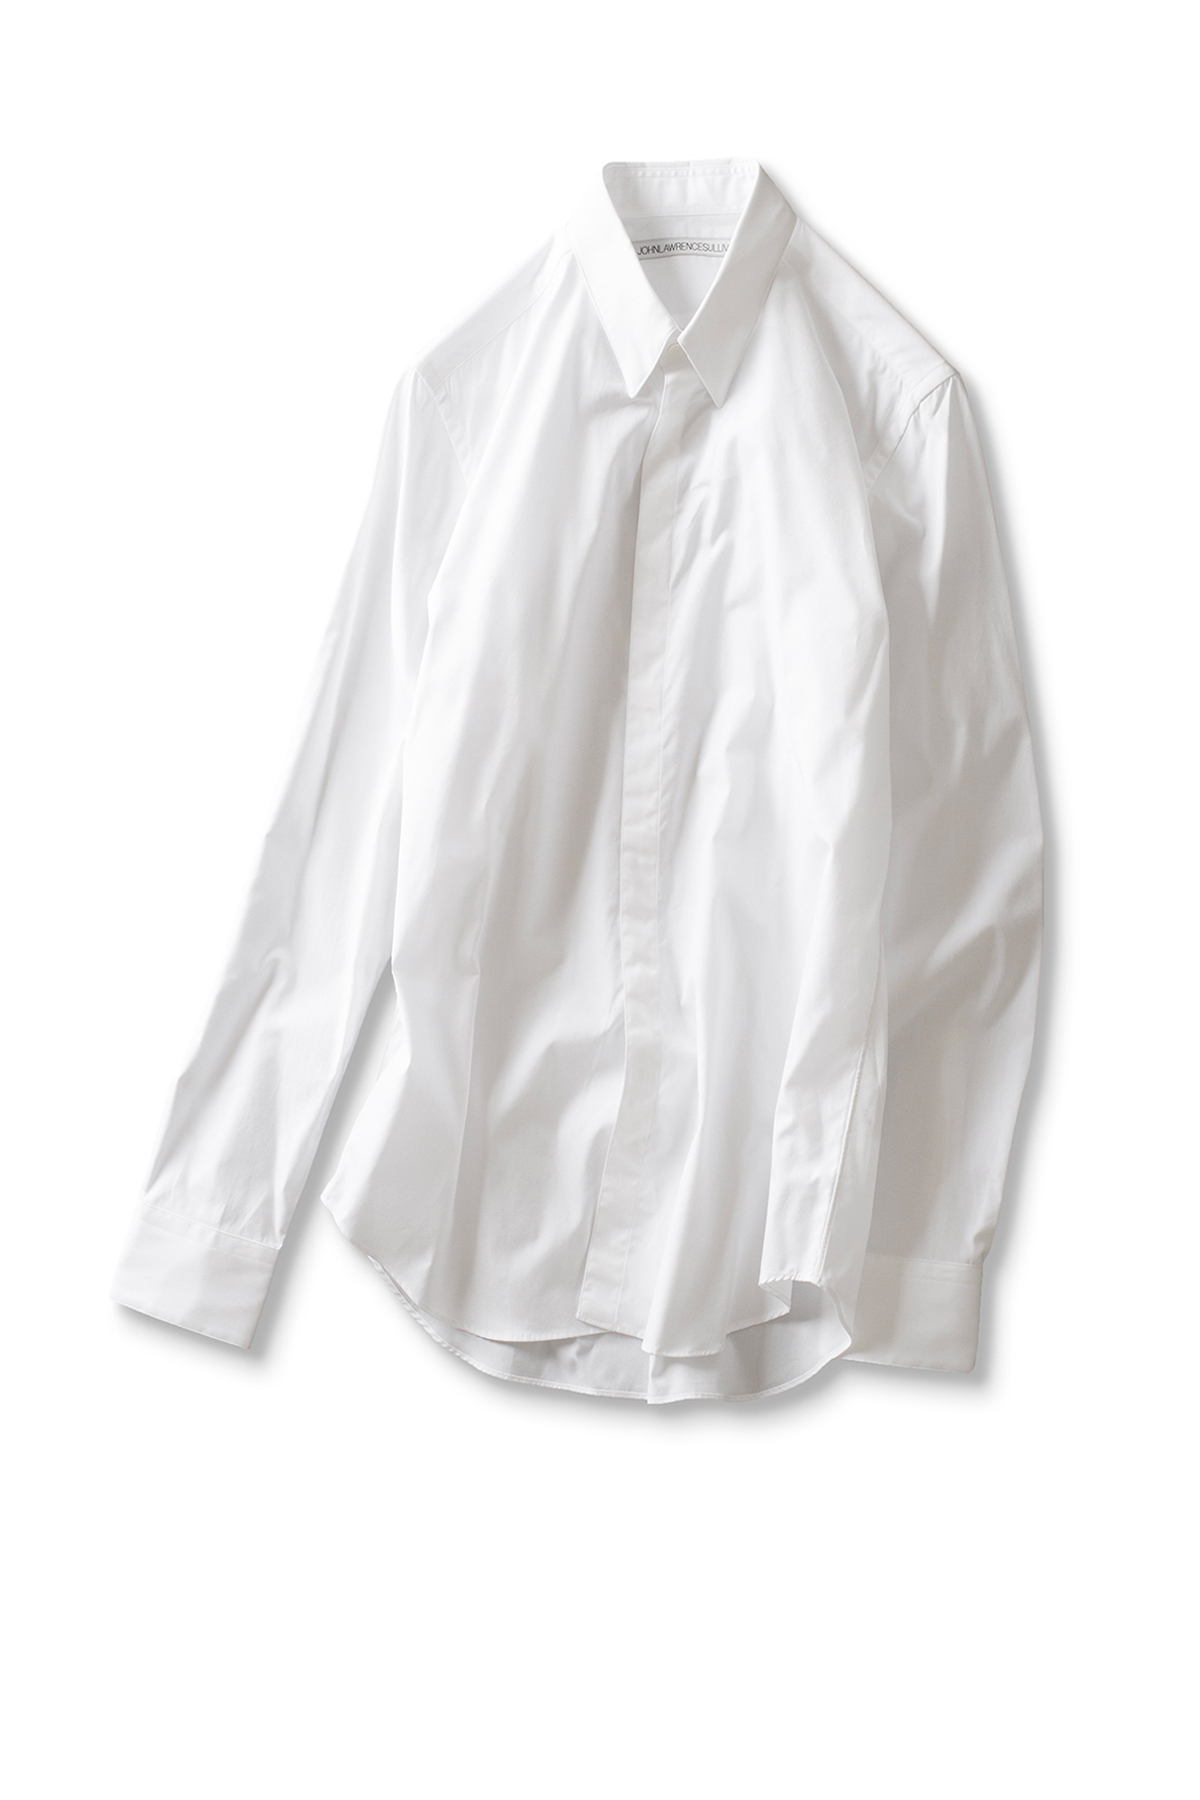 JOHN LAWRENCE SULLIVAN : Classic Dress Shirt (White)